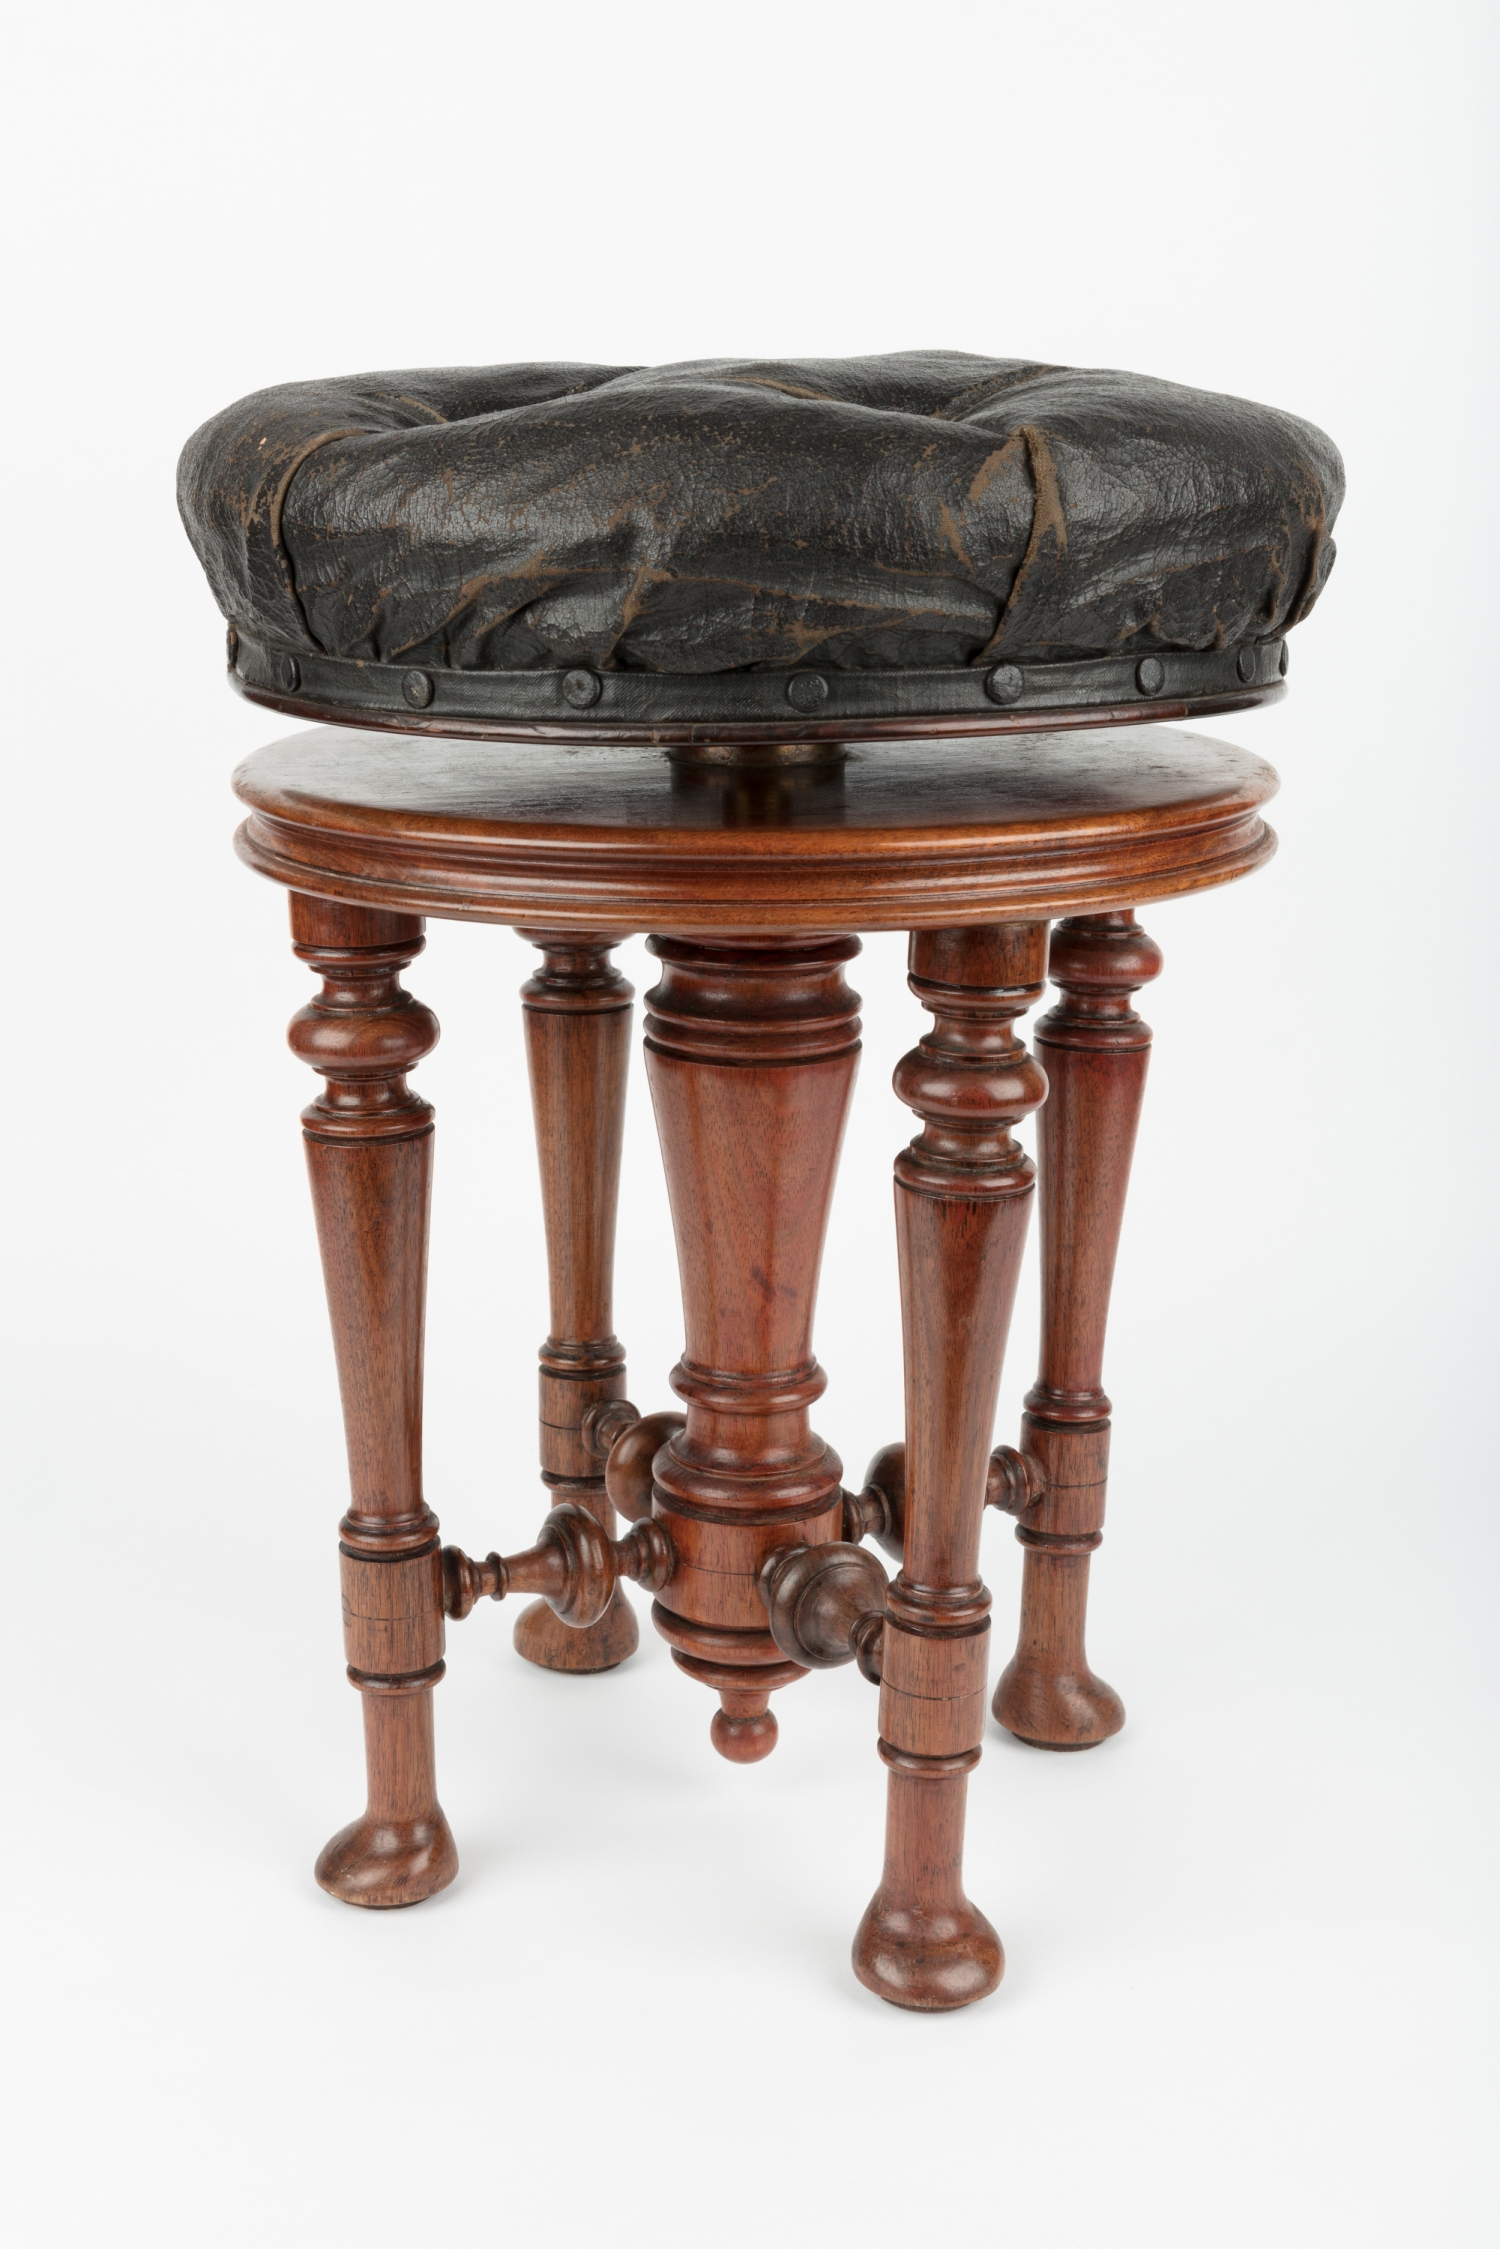 Piano stool with adjustable rising action, c1875-1900